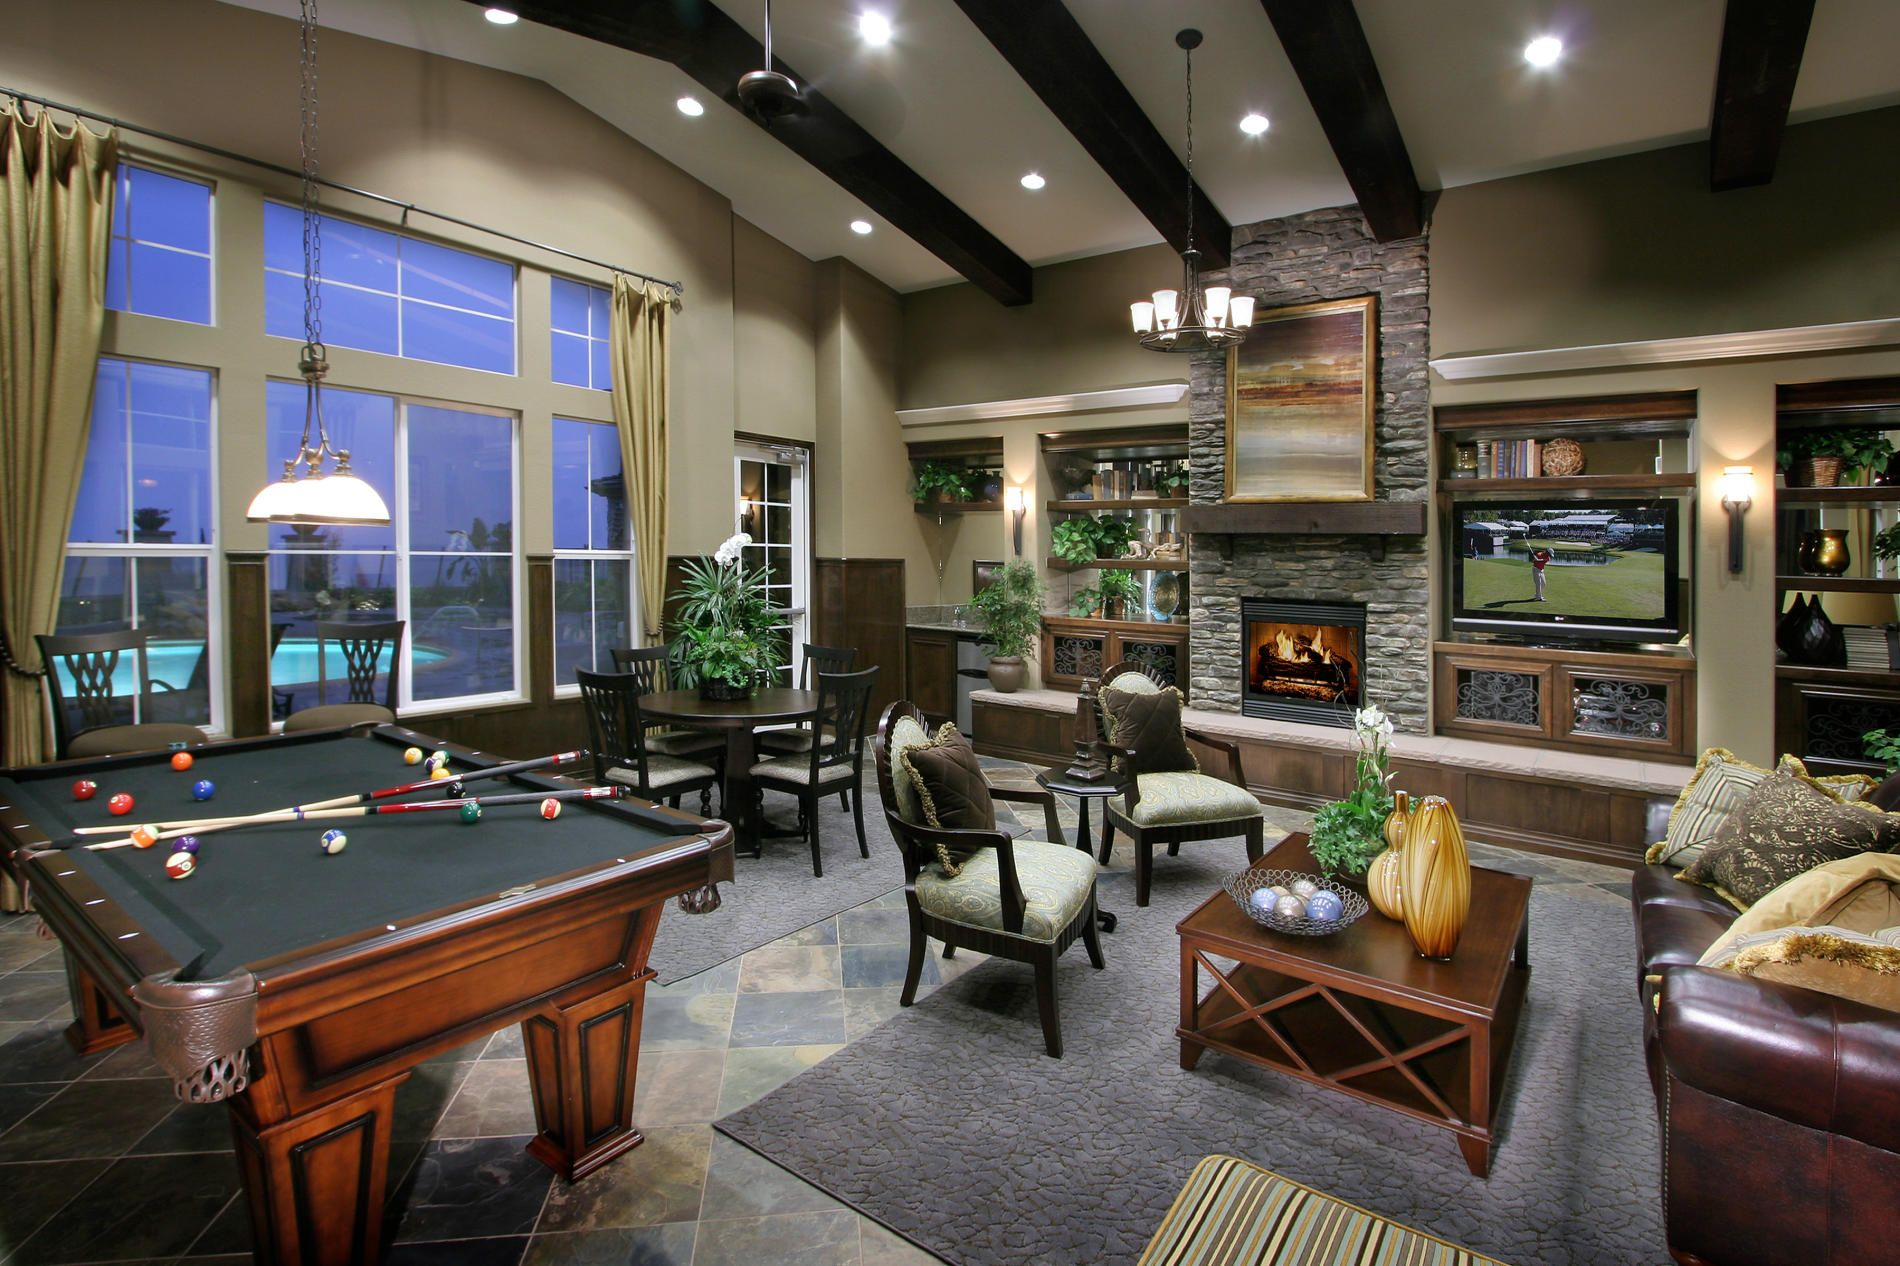 This one is smaller than a standard pool table and although you will need some elbow room for. Recreation Room | Recreational room, Rec room, New homes